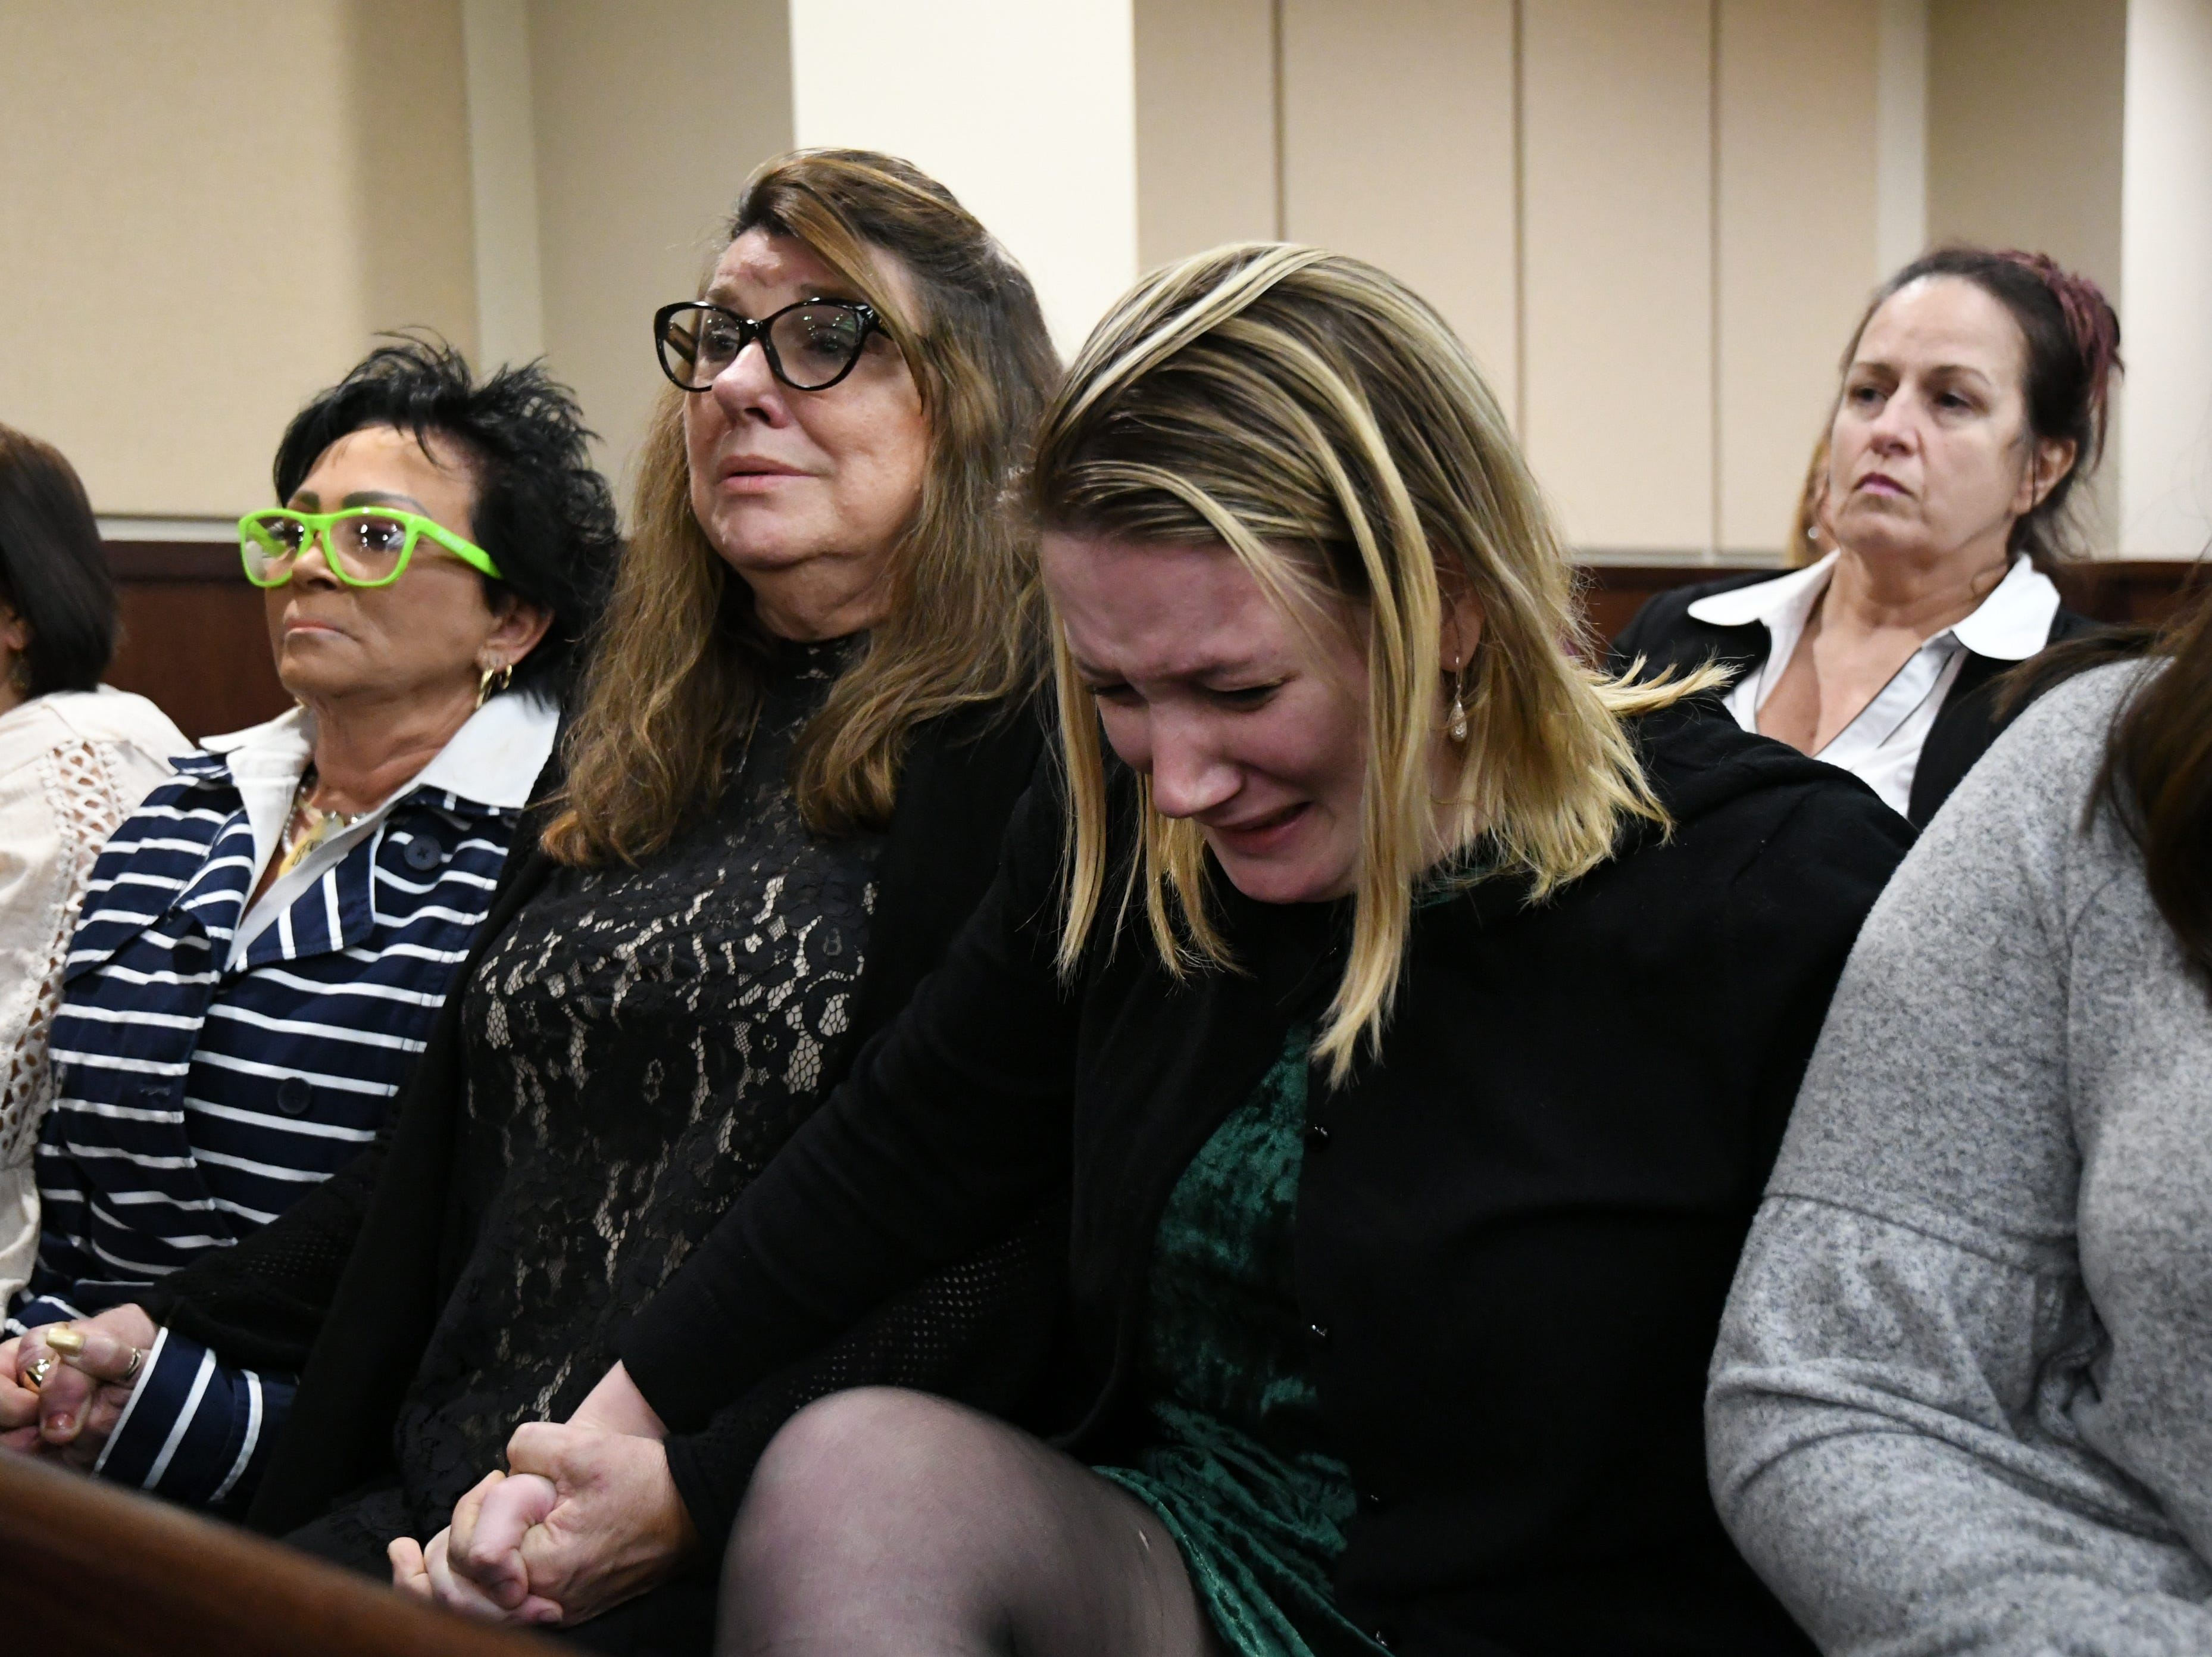 Mary Christy Denmark, center, a close family friend of Mike Williams, the man who was shot and killed by his best friend Brian Winchester, grasps her daughter's hand, Marya Denmark, right, as the verdicts are announced in the trial against Denise Williams for the murder of her husband, Mike Williams, Friday, Dec. 14, 2018.